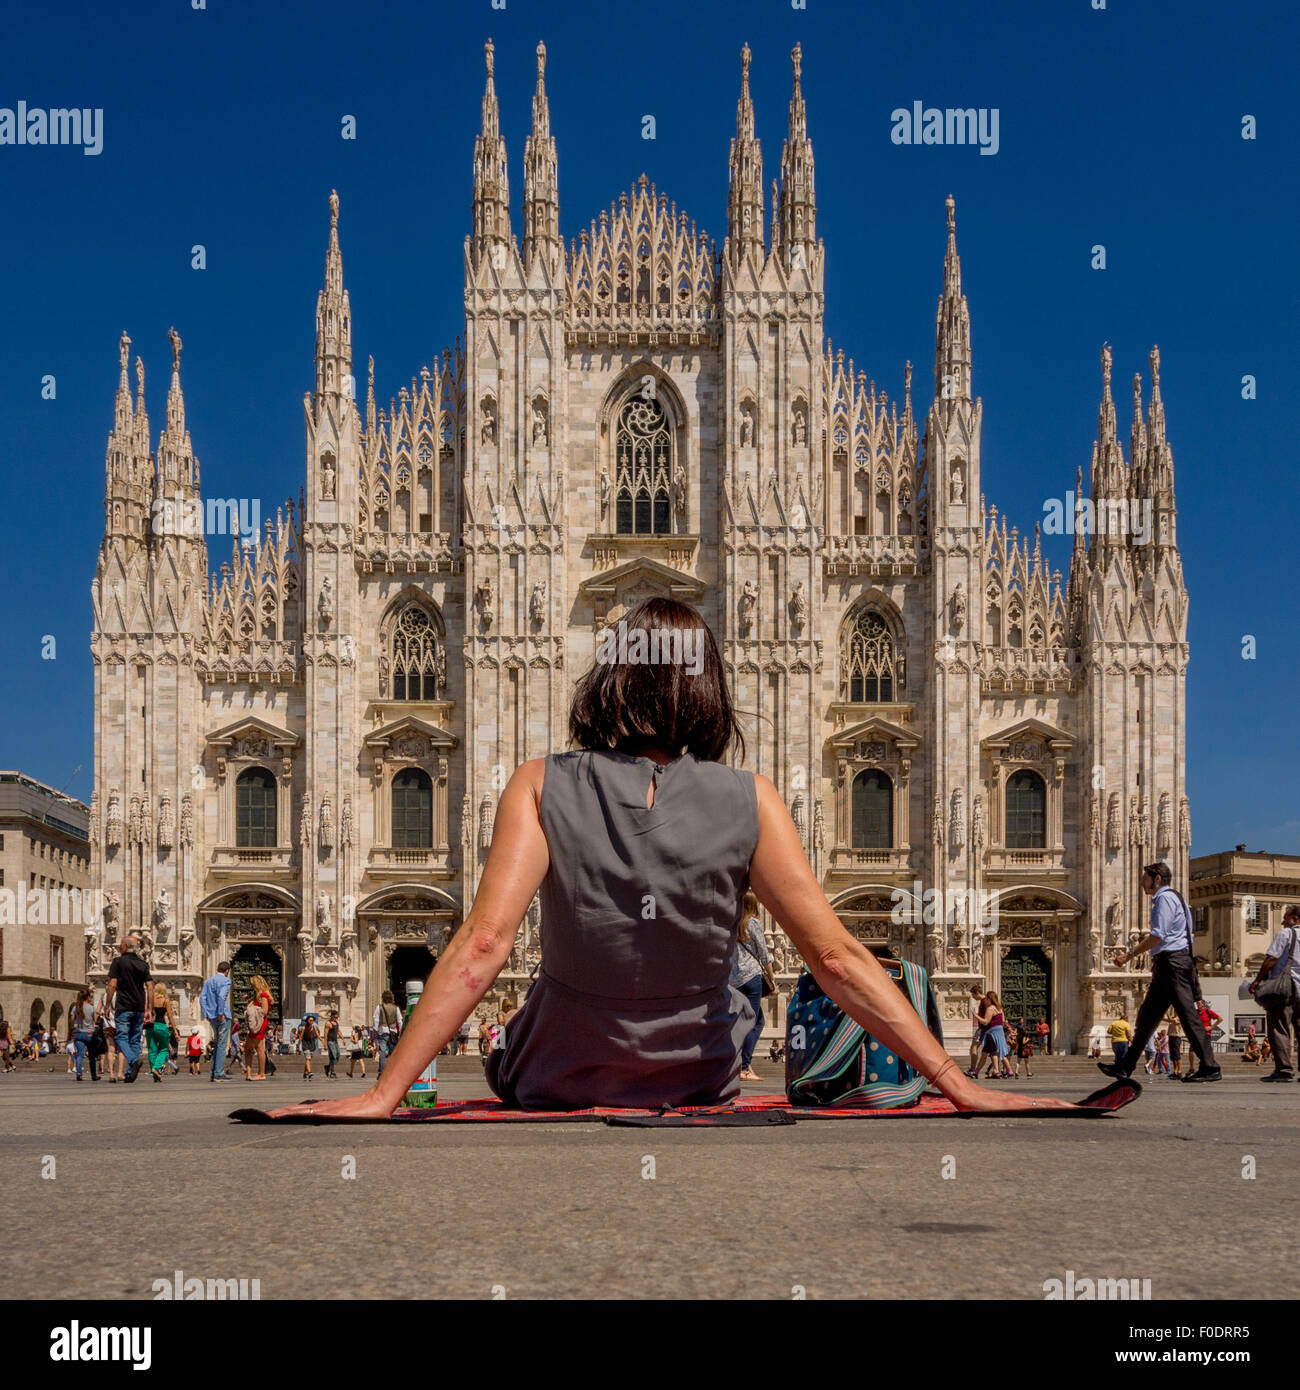 Female tourist sitting on a picnic blanket, on the ground outside Milan Cathedral. Italy - Stock Image